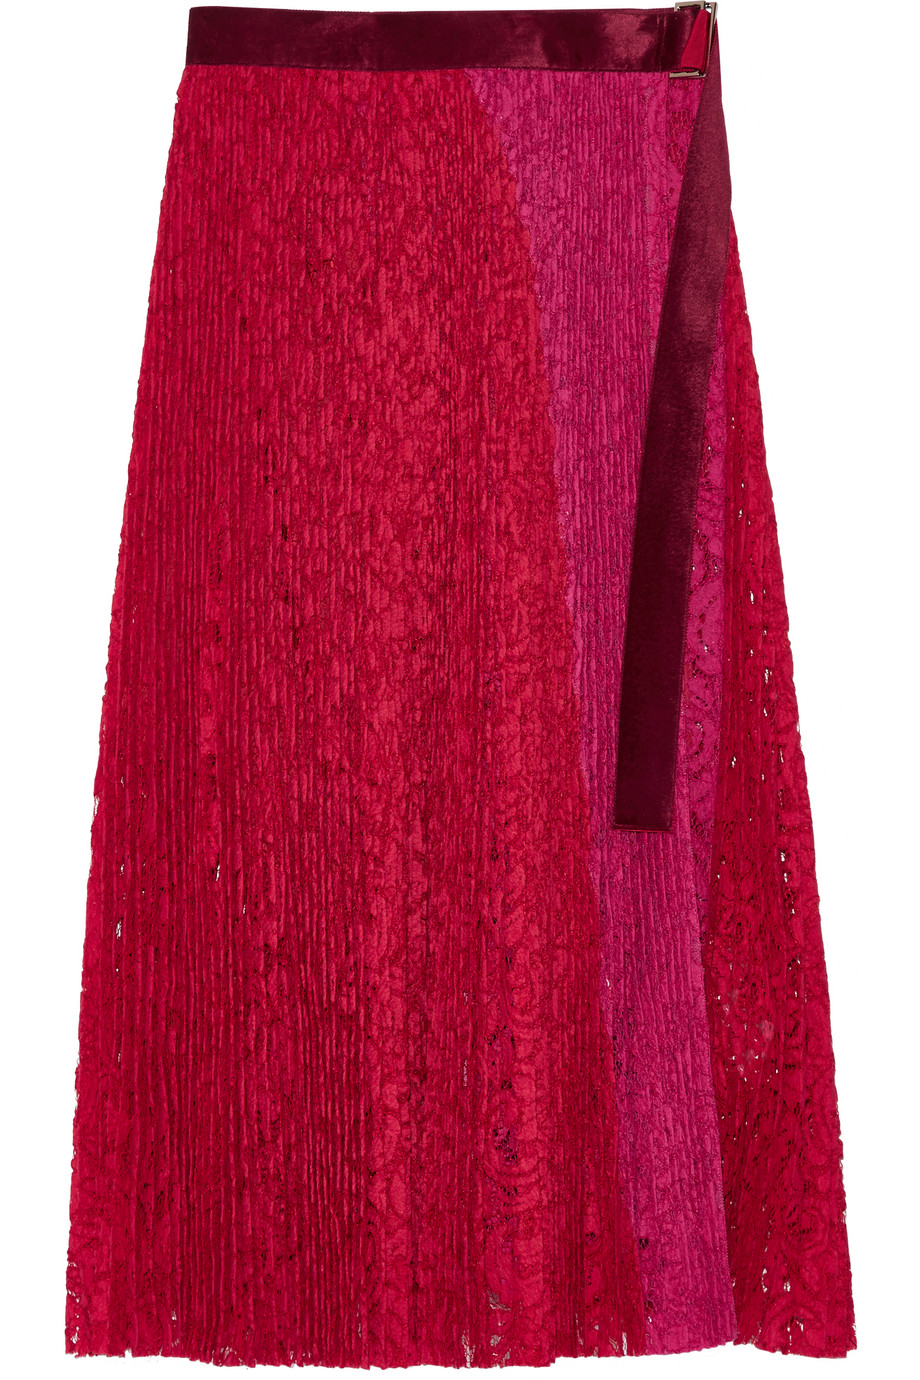 Sacai Velvet-Trimmed Pleated Lace Wrap Skirt, Red, Women's, Size: 4